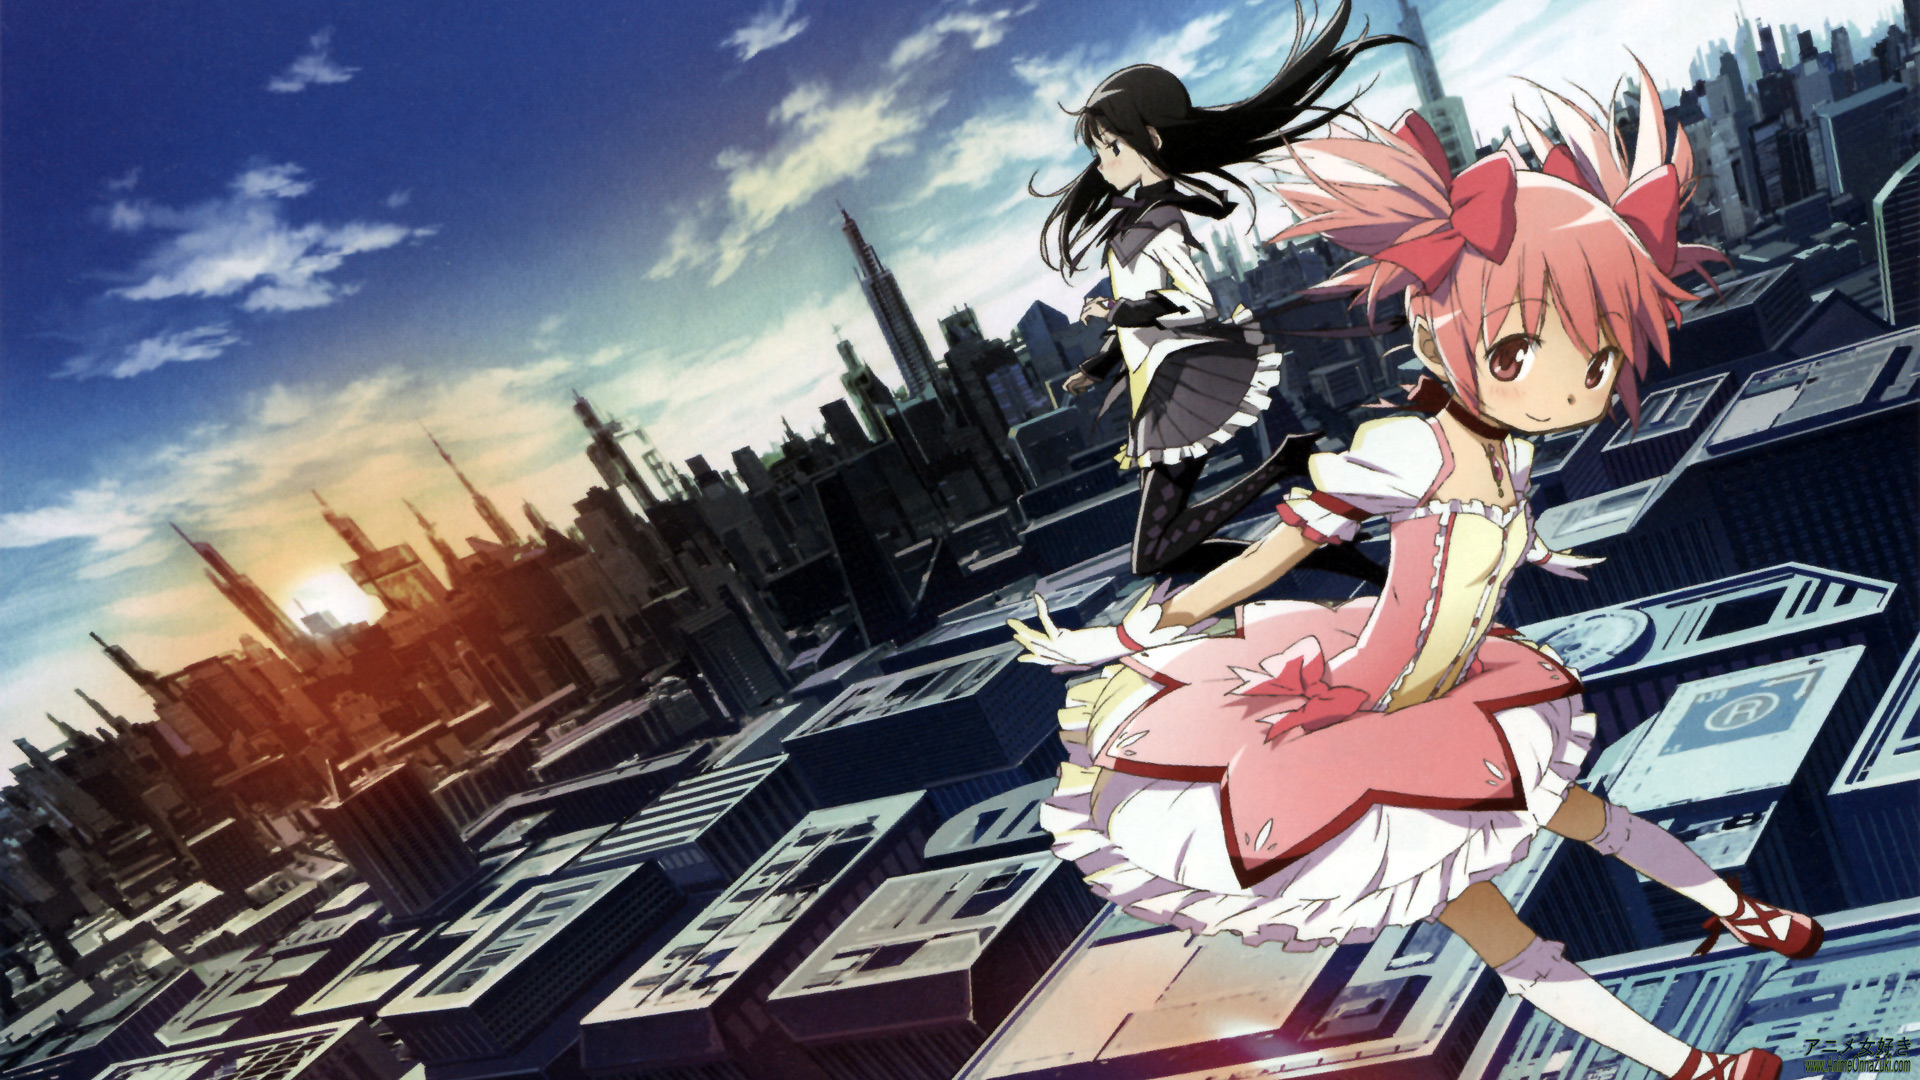 Hd Madoka Magica Backgrounds Wallpaper Wiki